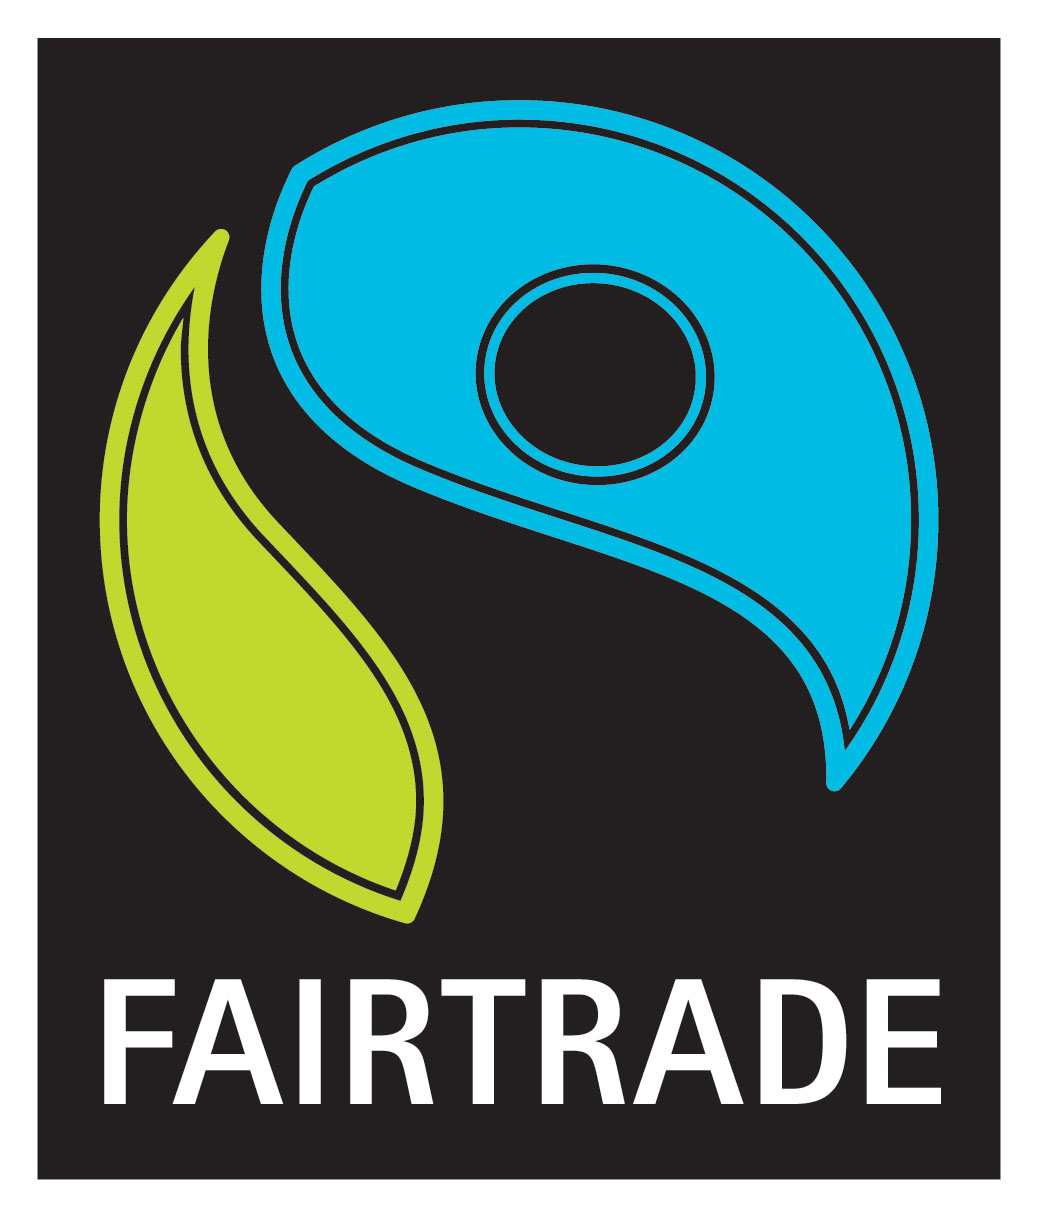 How Much Difference Does Fairtrade Make And How Can We Measure It